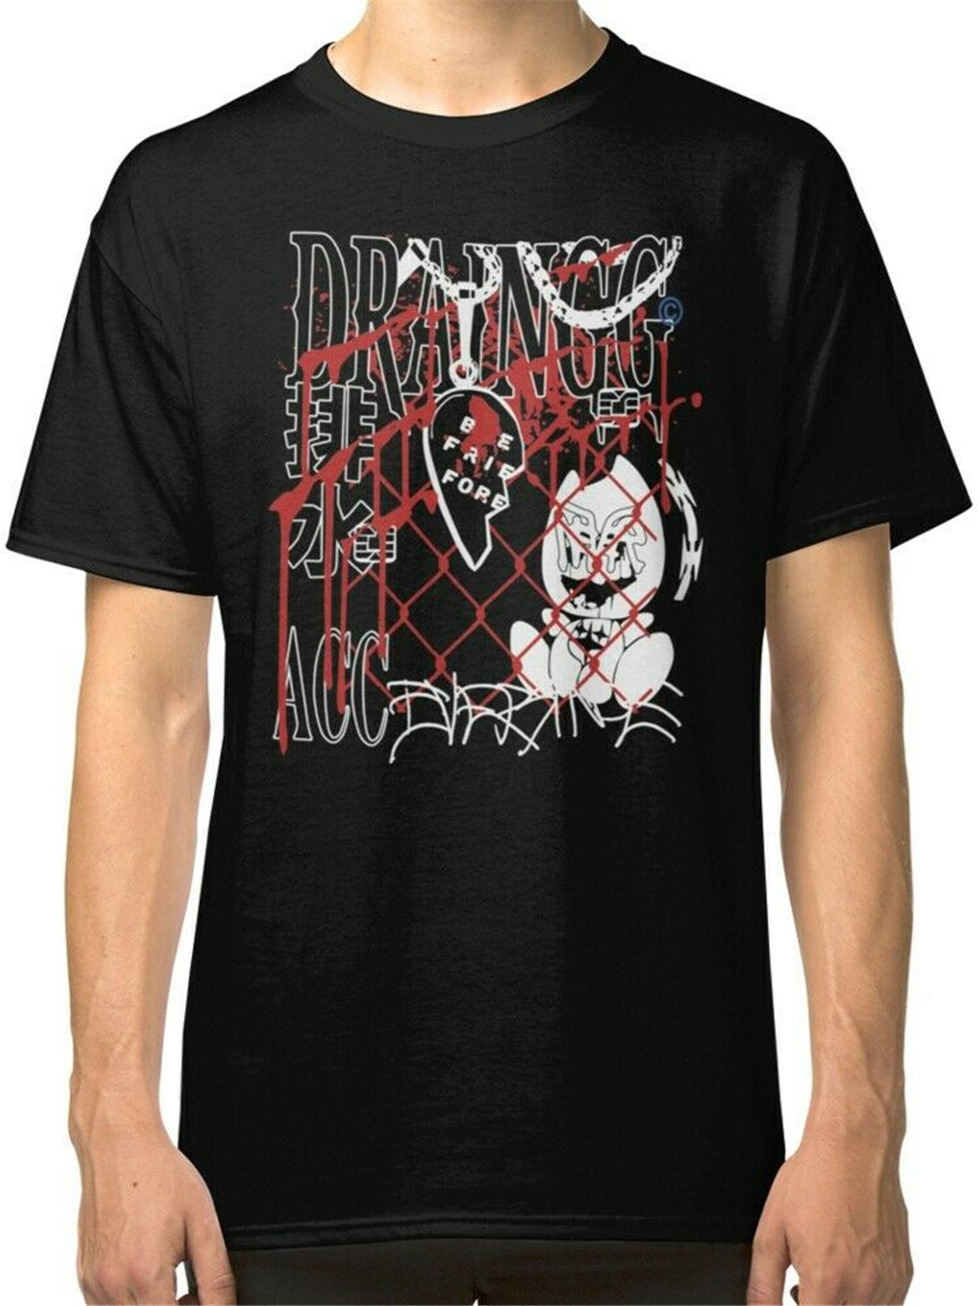 Drain Gang Merch Men'S Black T-Shirt S To 3Xl Apparel Casual  Tee Shirt